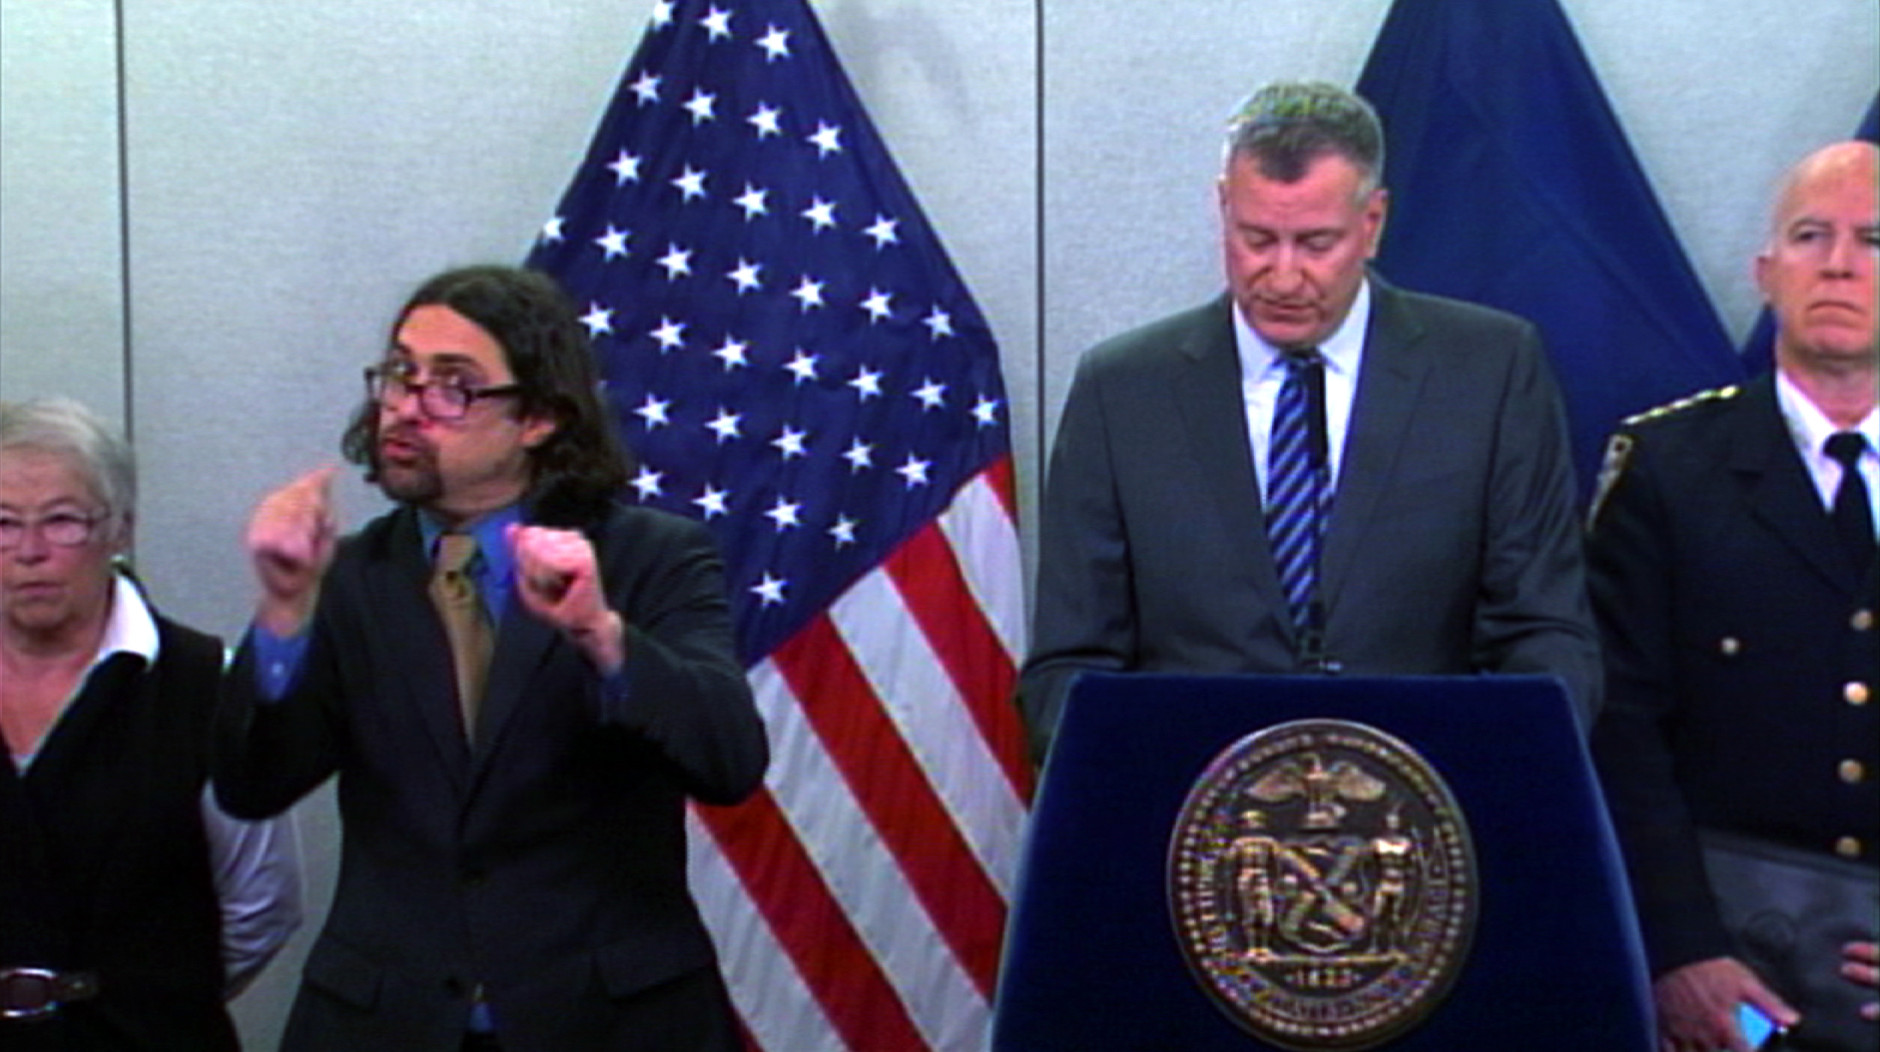 Nyc mayors vibrant deaf interpreter creates his own storm wtop xflitez Image collections